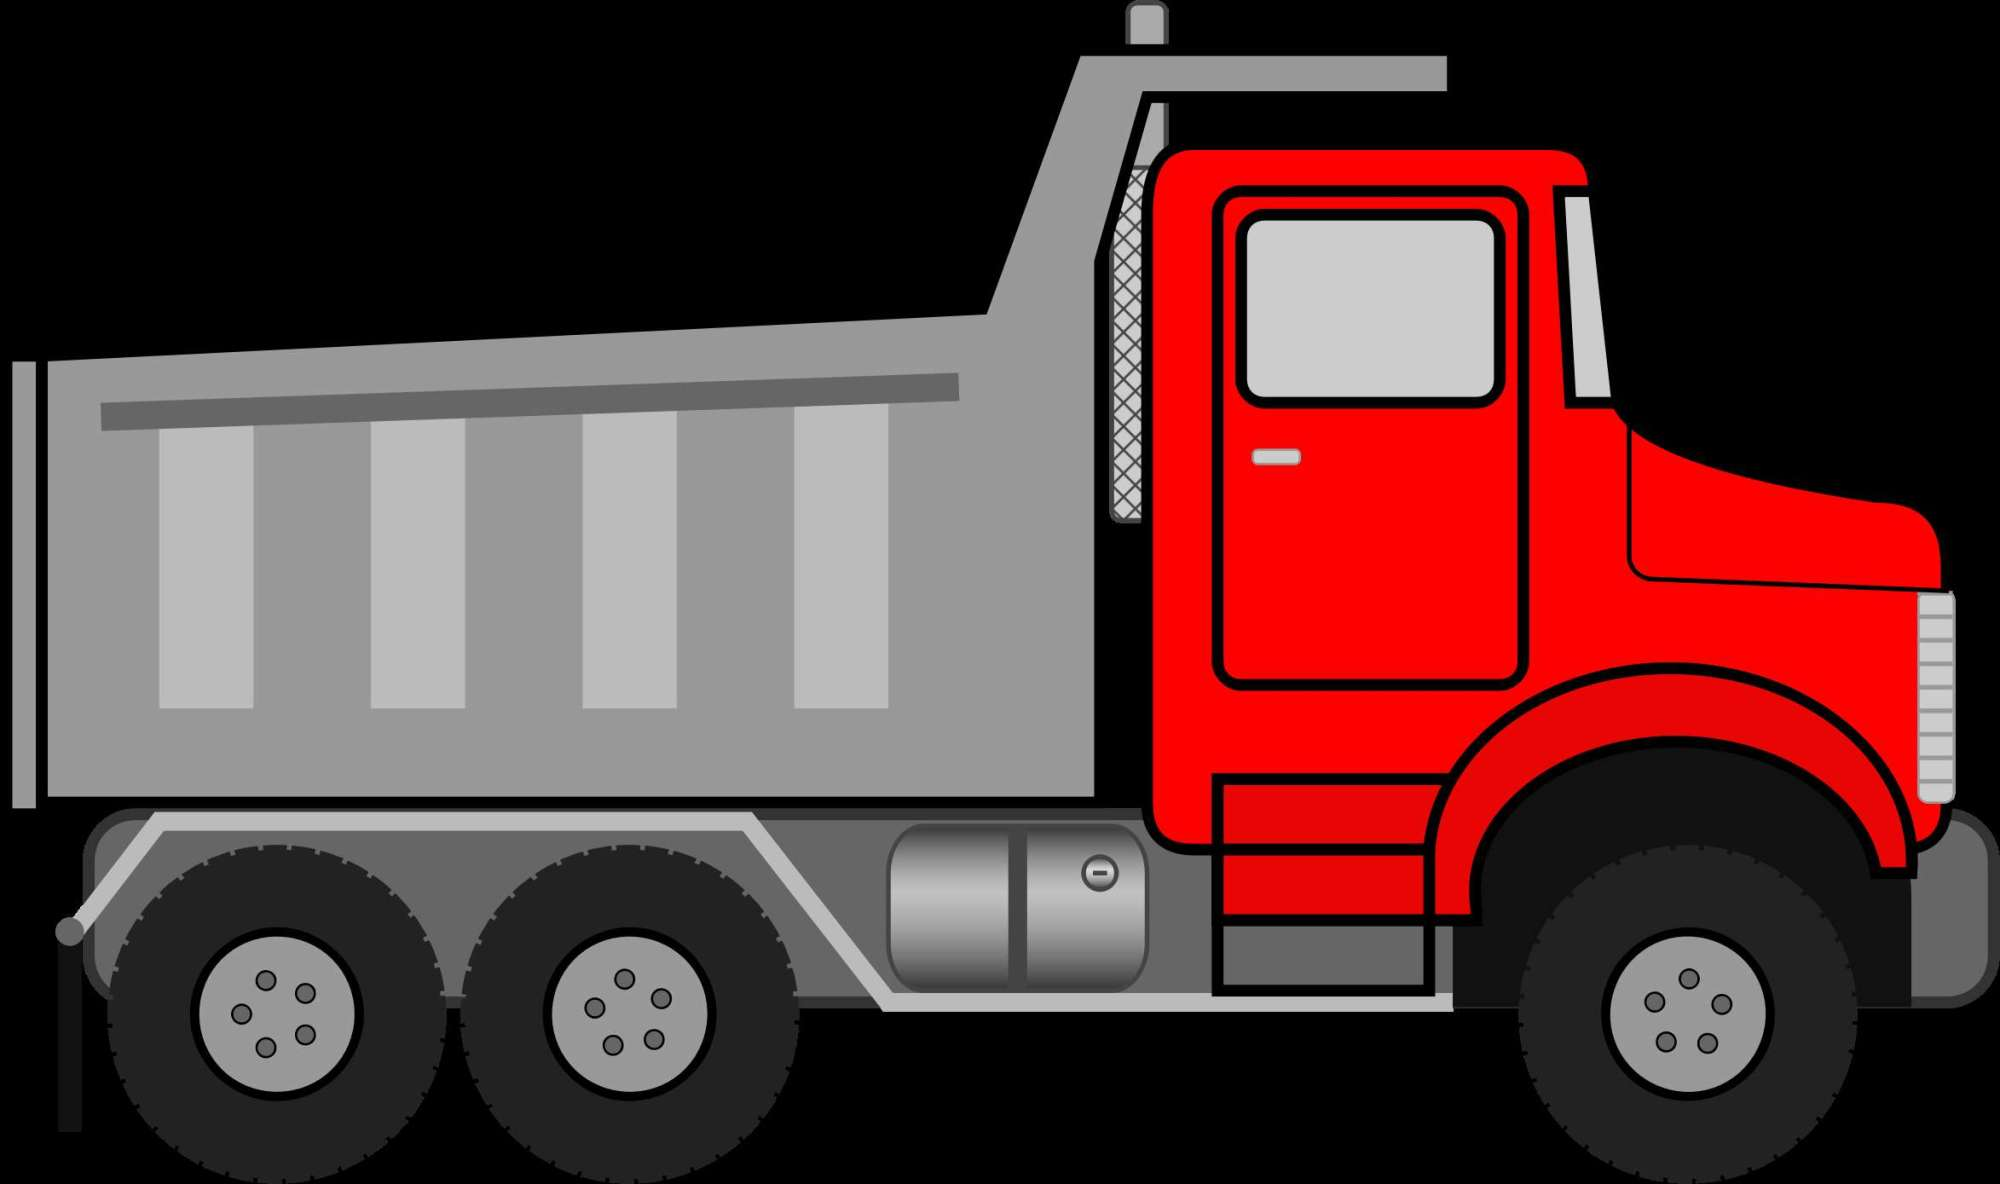 hight resolution of monster under bed clipart truck vector clipart image png download